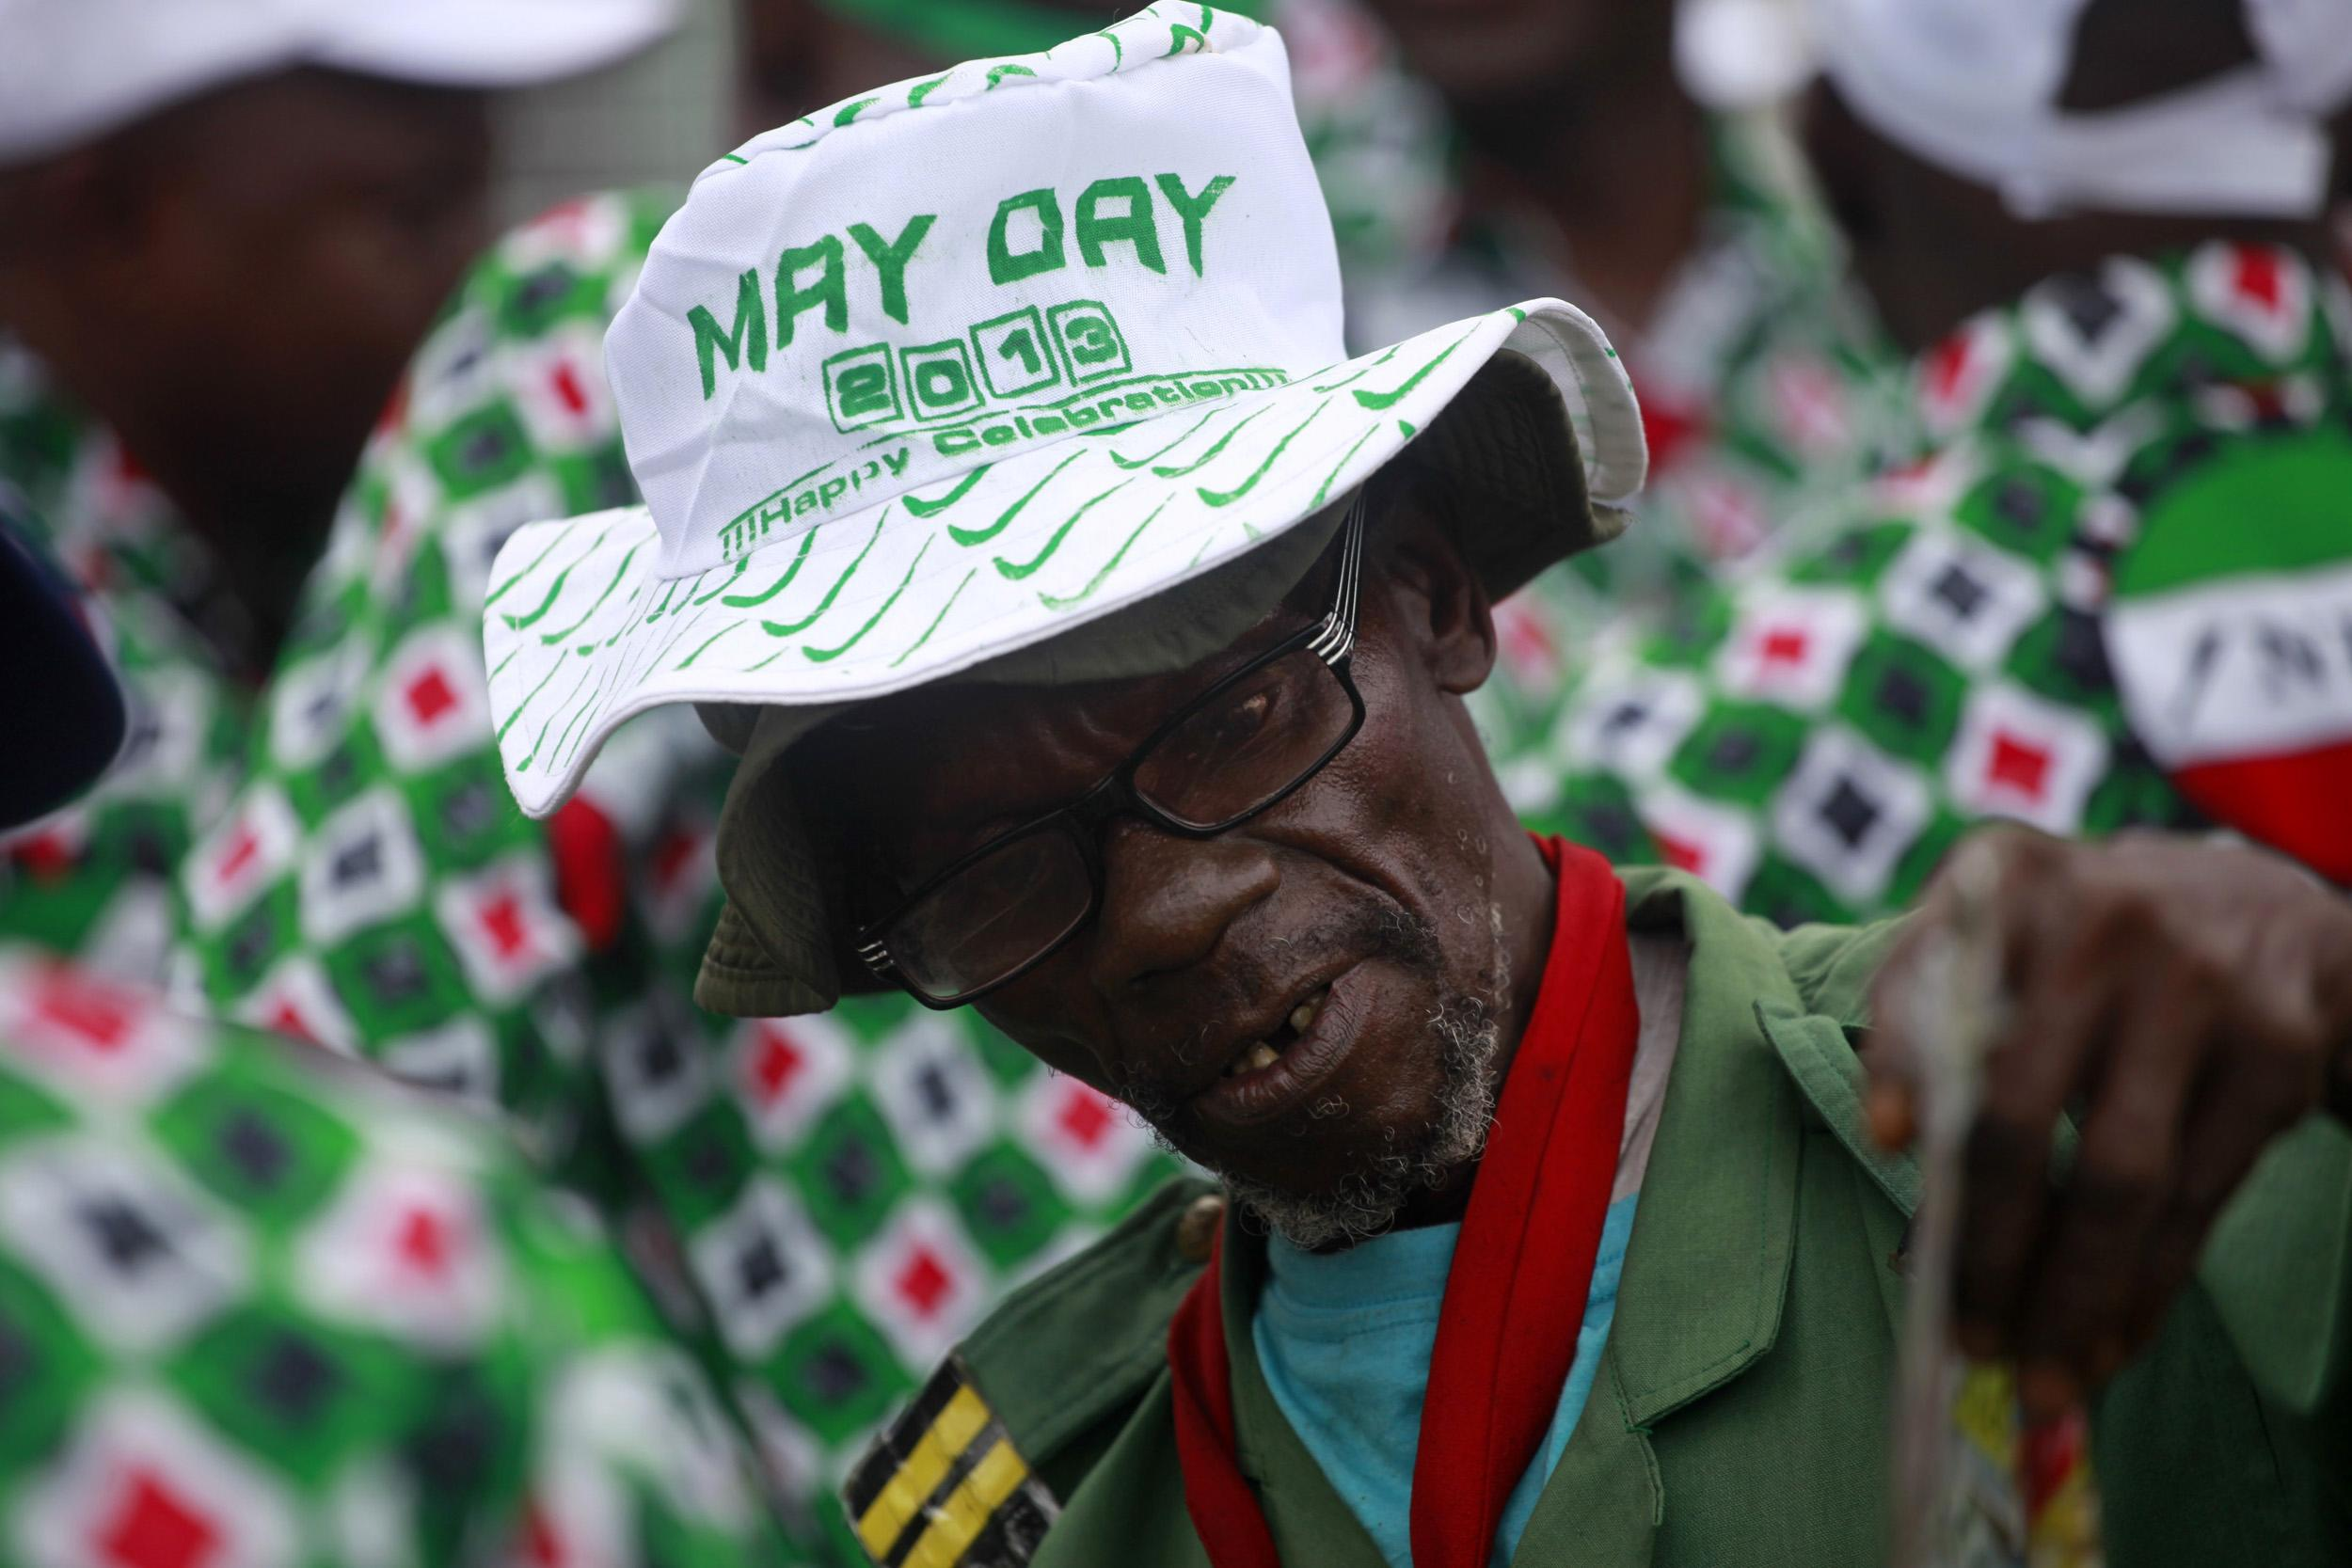 Nigerian parade attendee on May Day